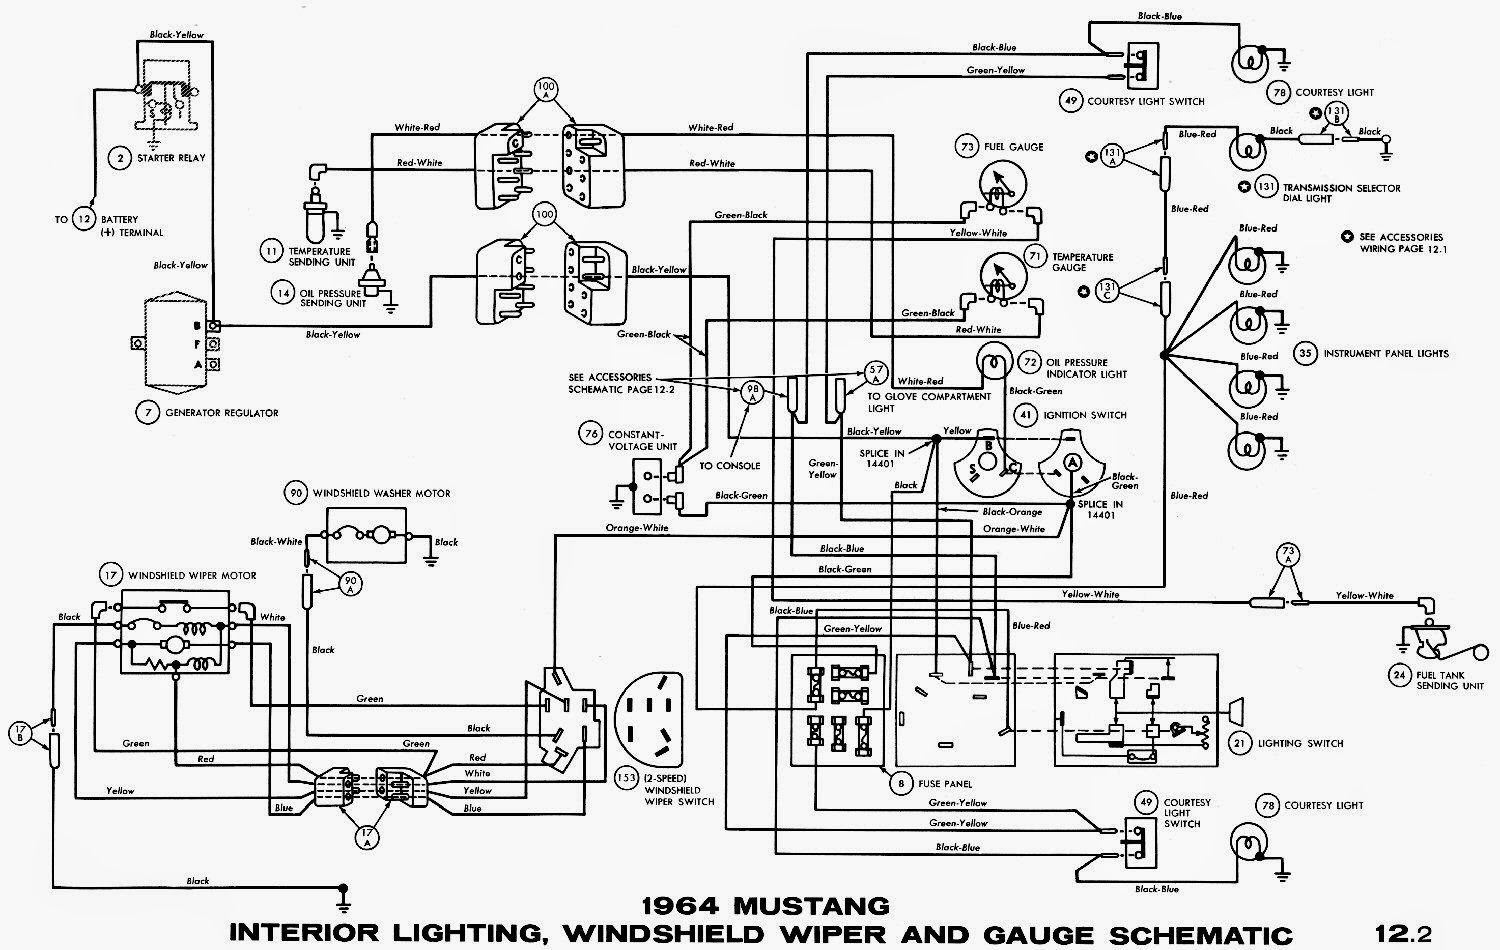 1964 mustang wiring diagrams schematic